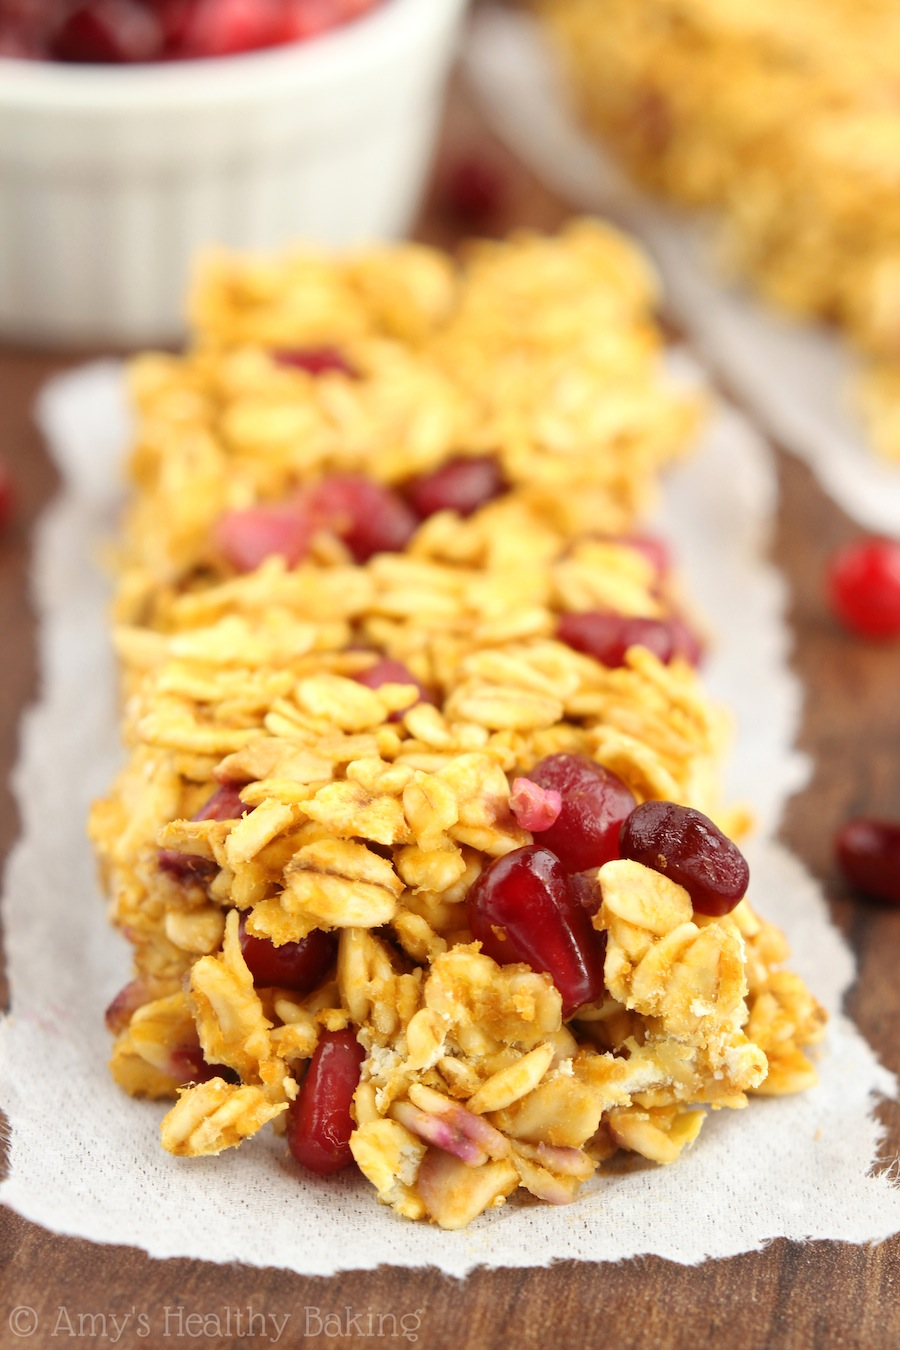 A simple recipe for skinny, clean-eating Pomegranate Pumpkin Granola Bars. So much healthier & cheaper than store-bought ones!